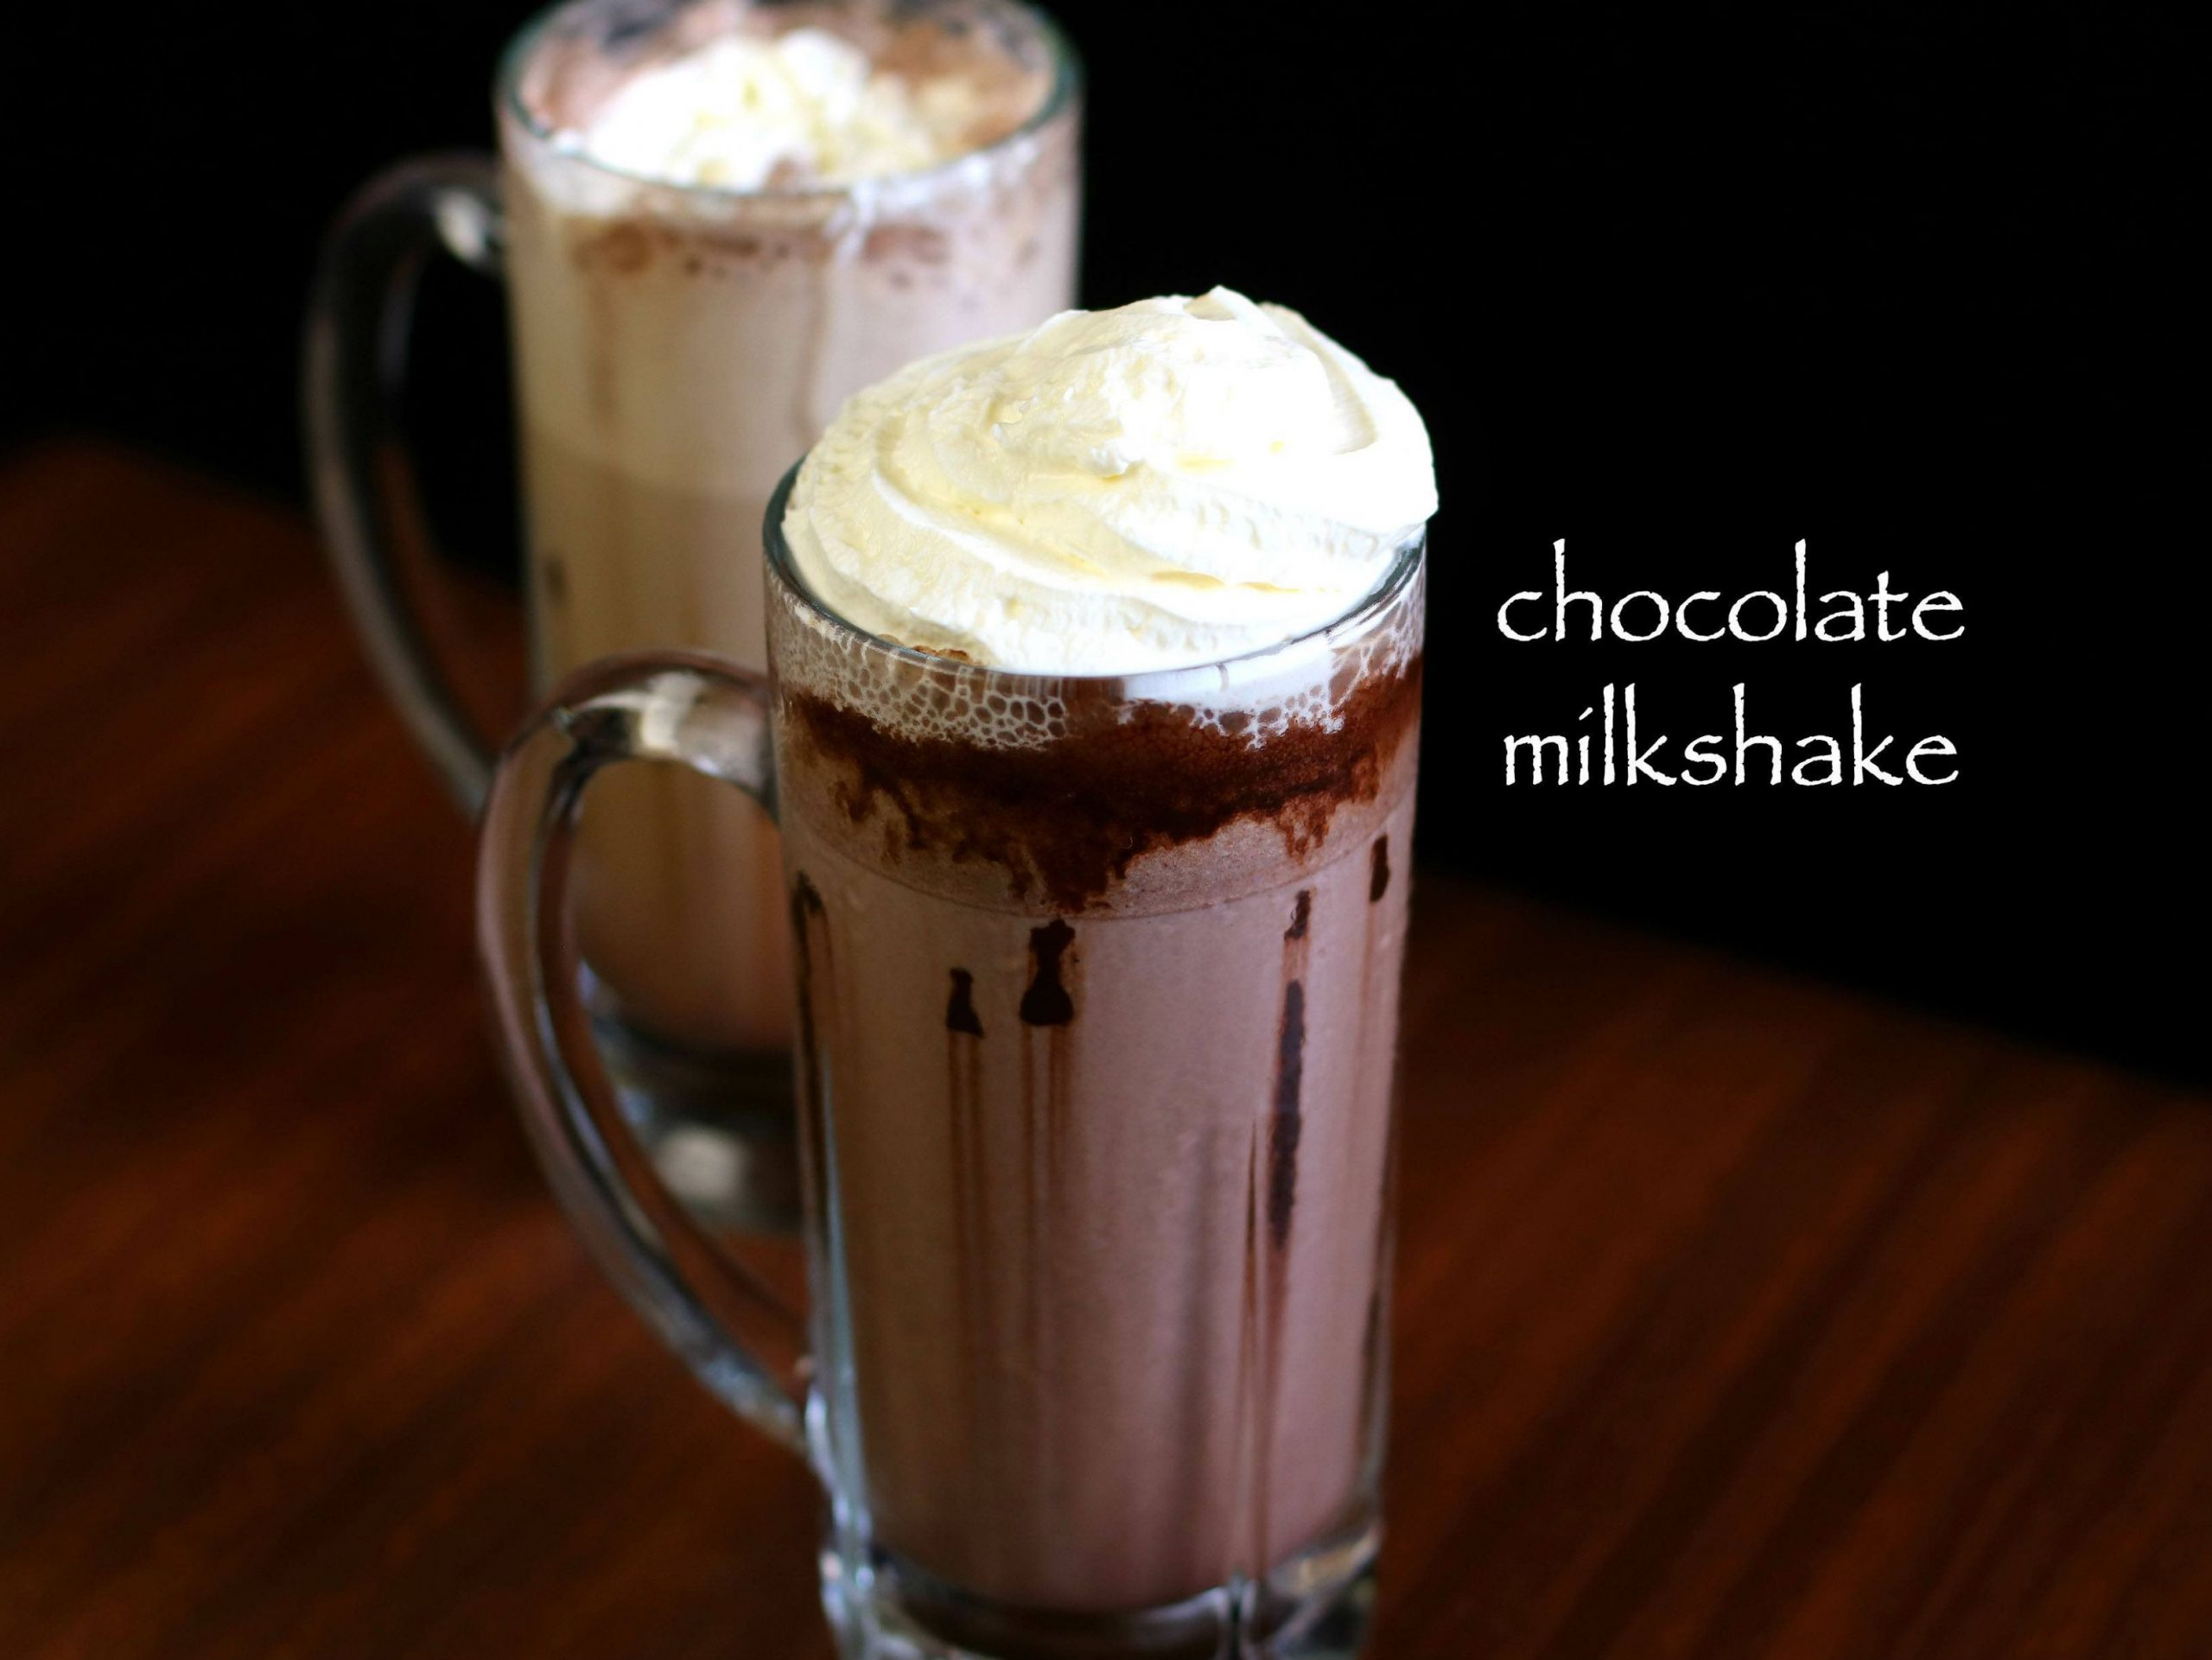 chocolate milkshake recipe | chocolate shake | chocolate milk recipe - Recipes Using Chocolate Milk